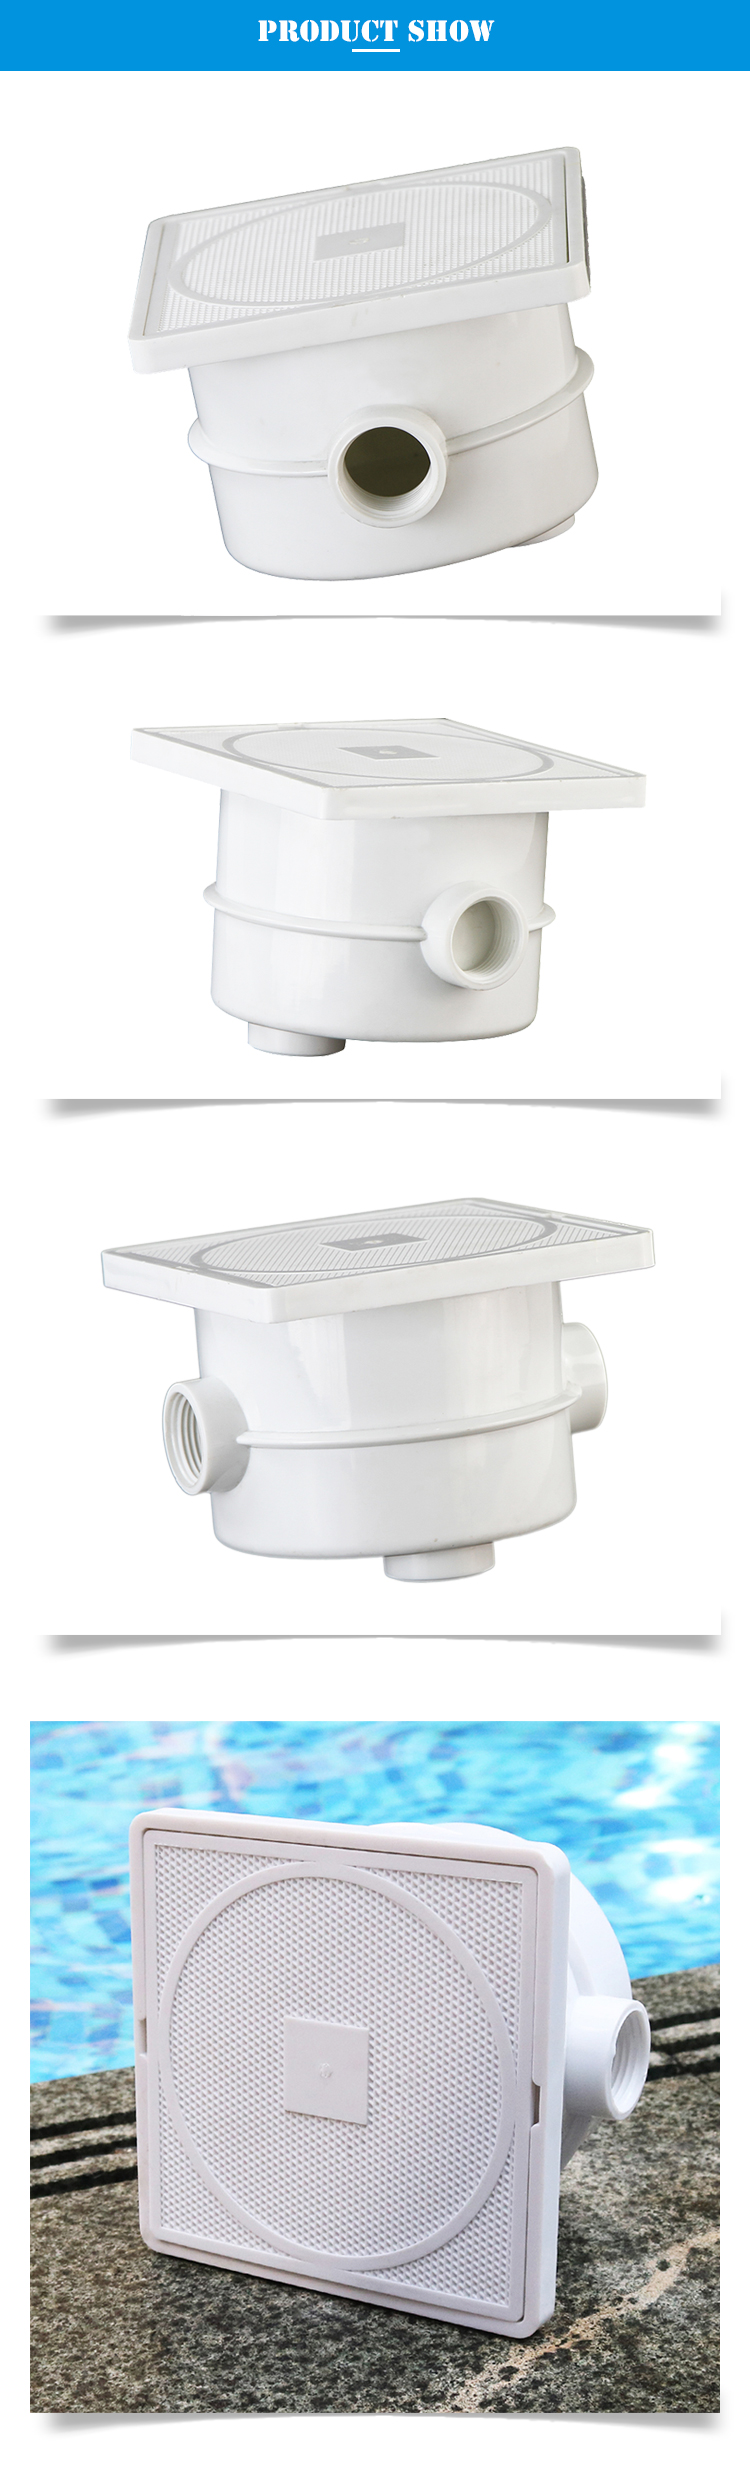 Abs White Color Plastic Waterproof Connection Led Lights Swimming Pool Junction Box View Swimming Pool Junction Box Fanlan Product Details From Guangzhou Fenlin Swimming Pool Sauna Equipment Co Ltd On Alibaba Com